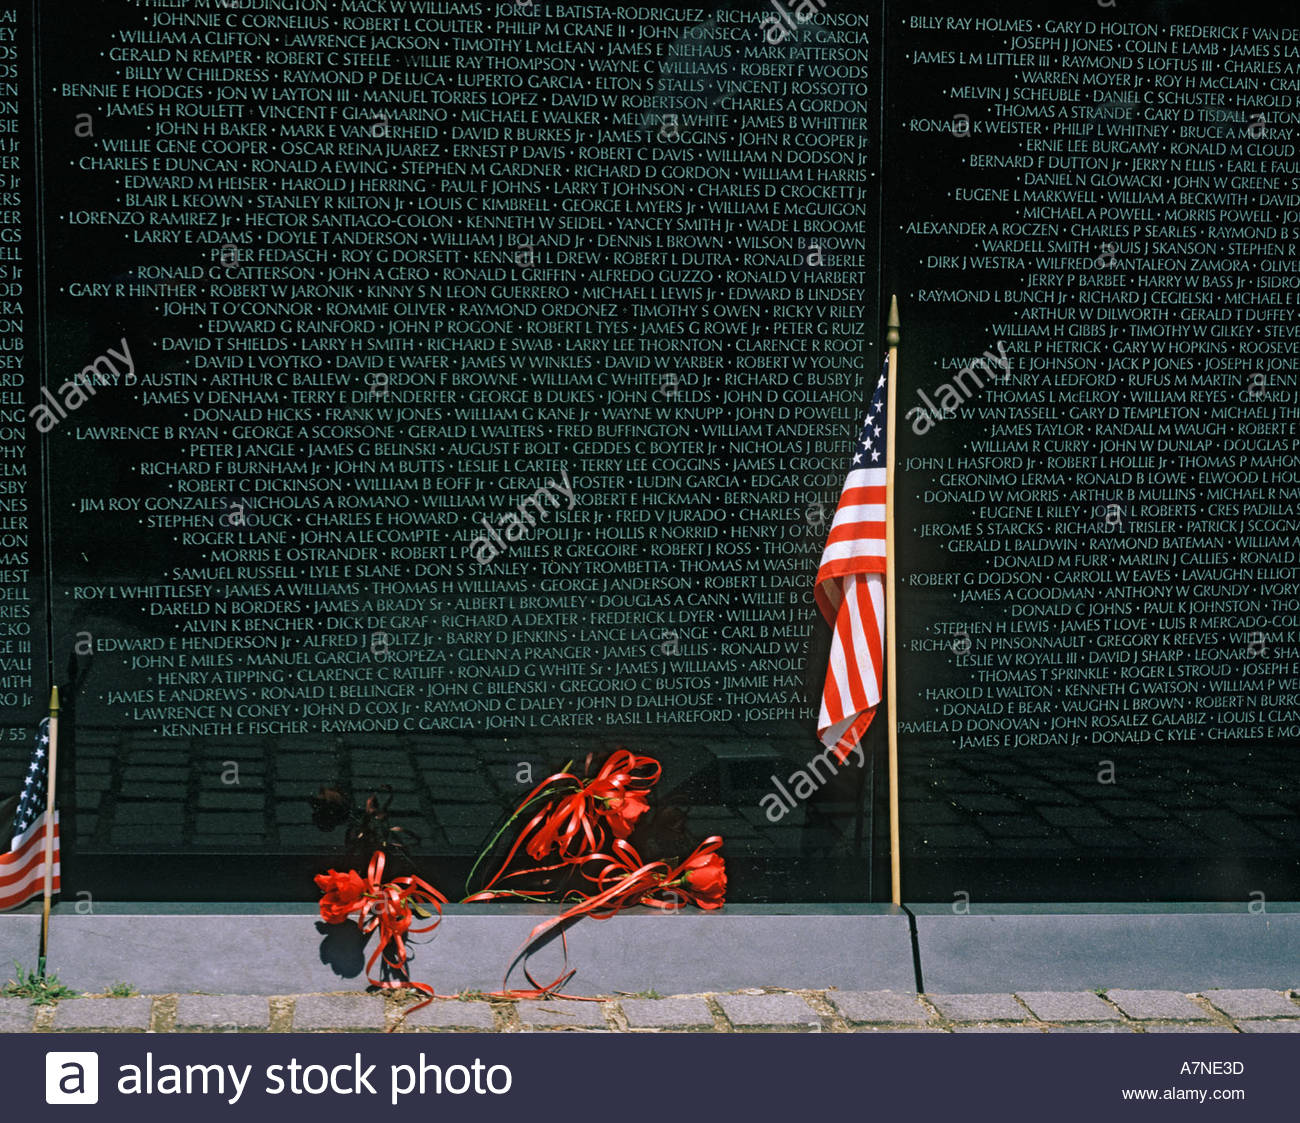 Names of war dead and missing in action etched on the Vietnam Veterans Memorial Wall in Washington DC USAStock Photo